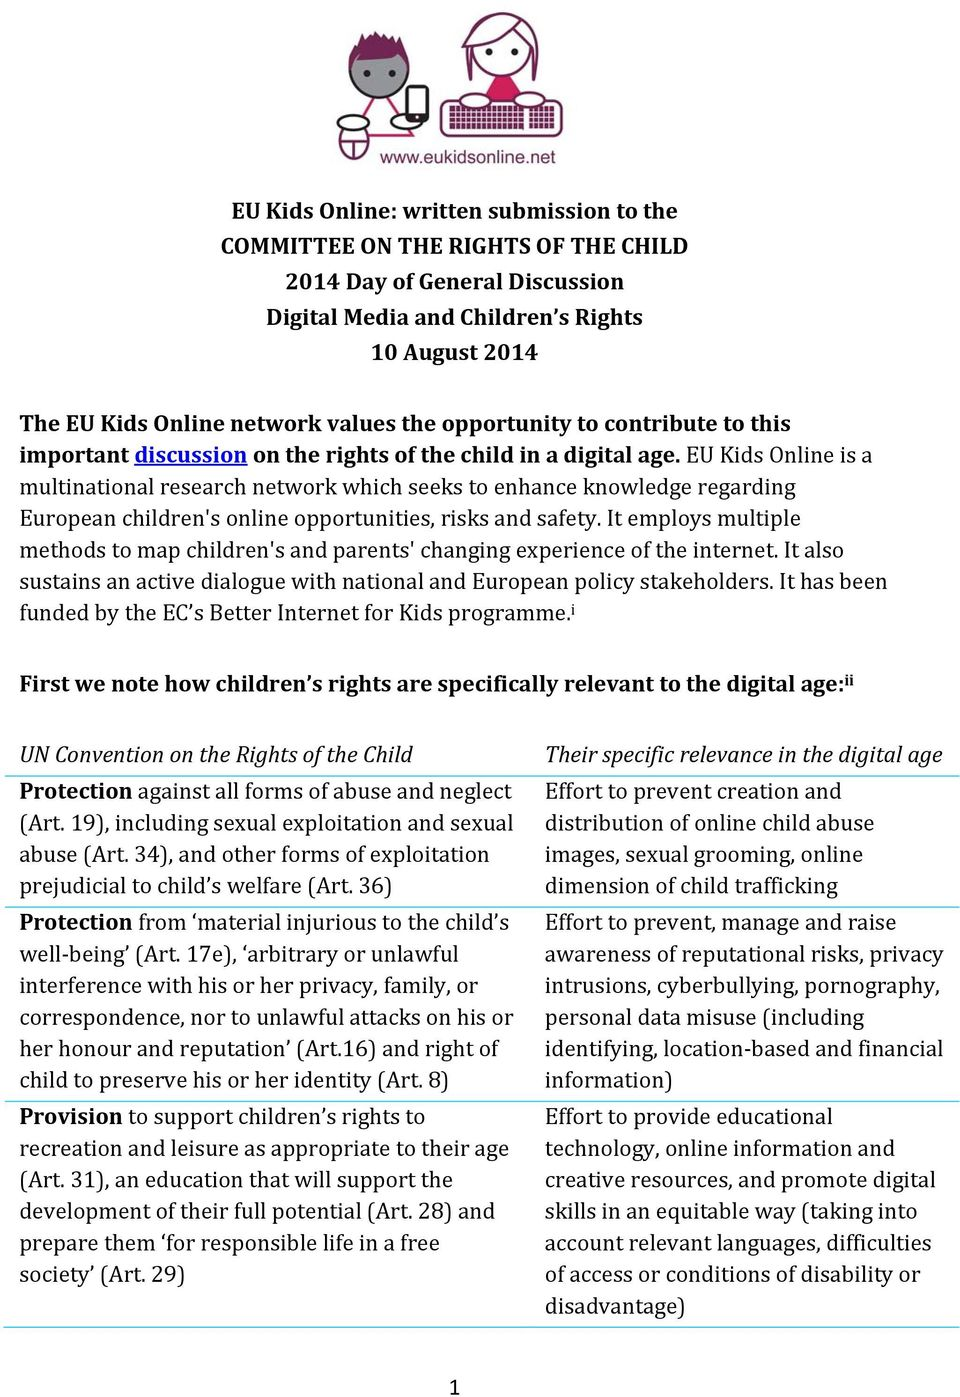 EU Kids Online is a multinational research network which seeks to enhance knowledge regarding European children's online opportunities, risks and safety.